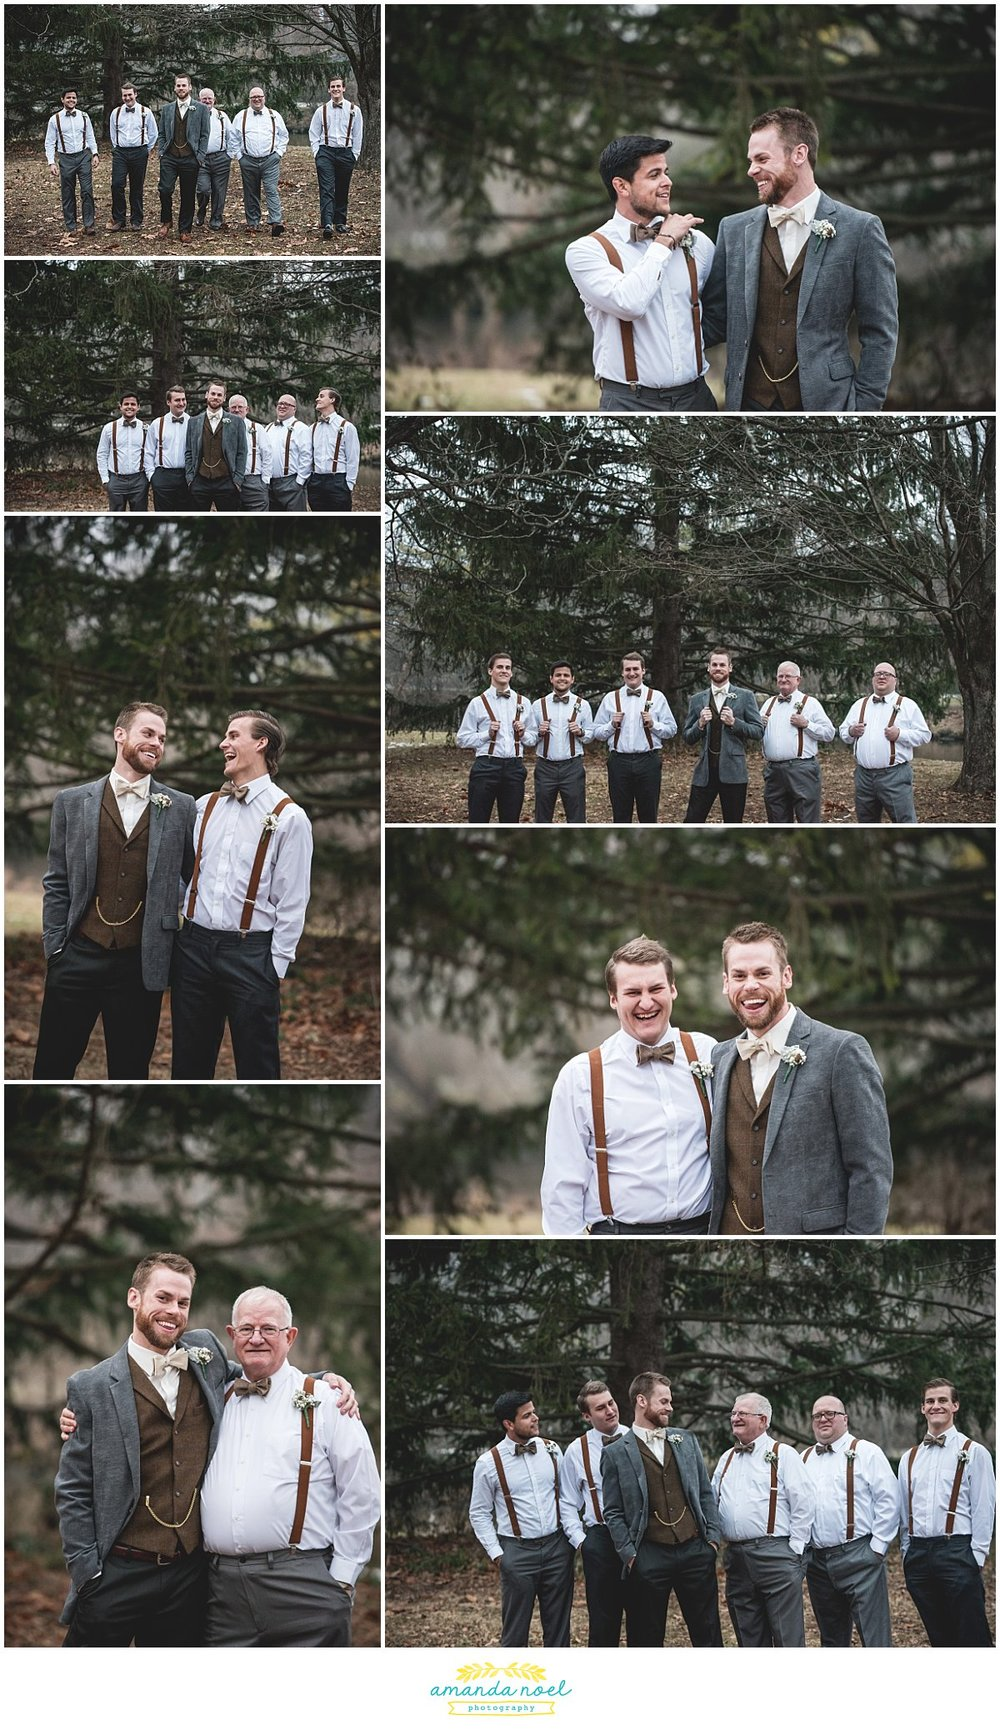 Springfield Ohio rustic winter wedding outdoor portraits groom + groomsmen | Amanda Noel Photography